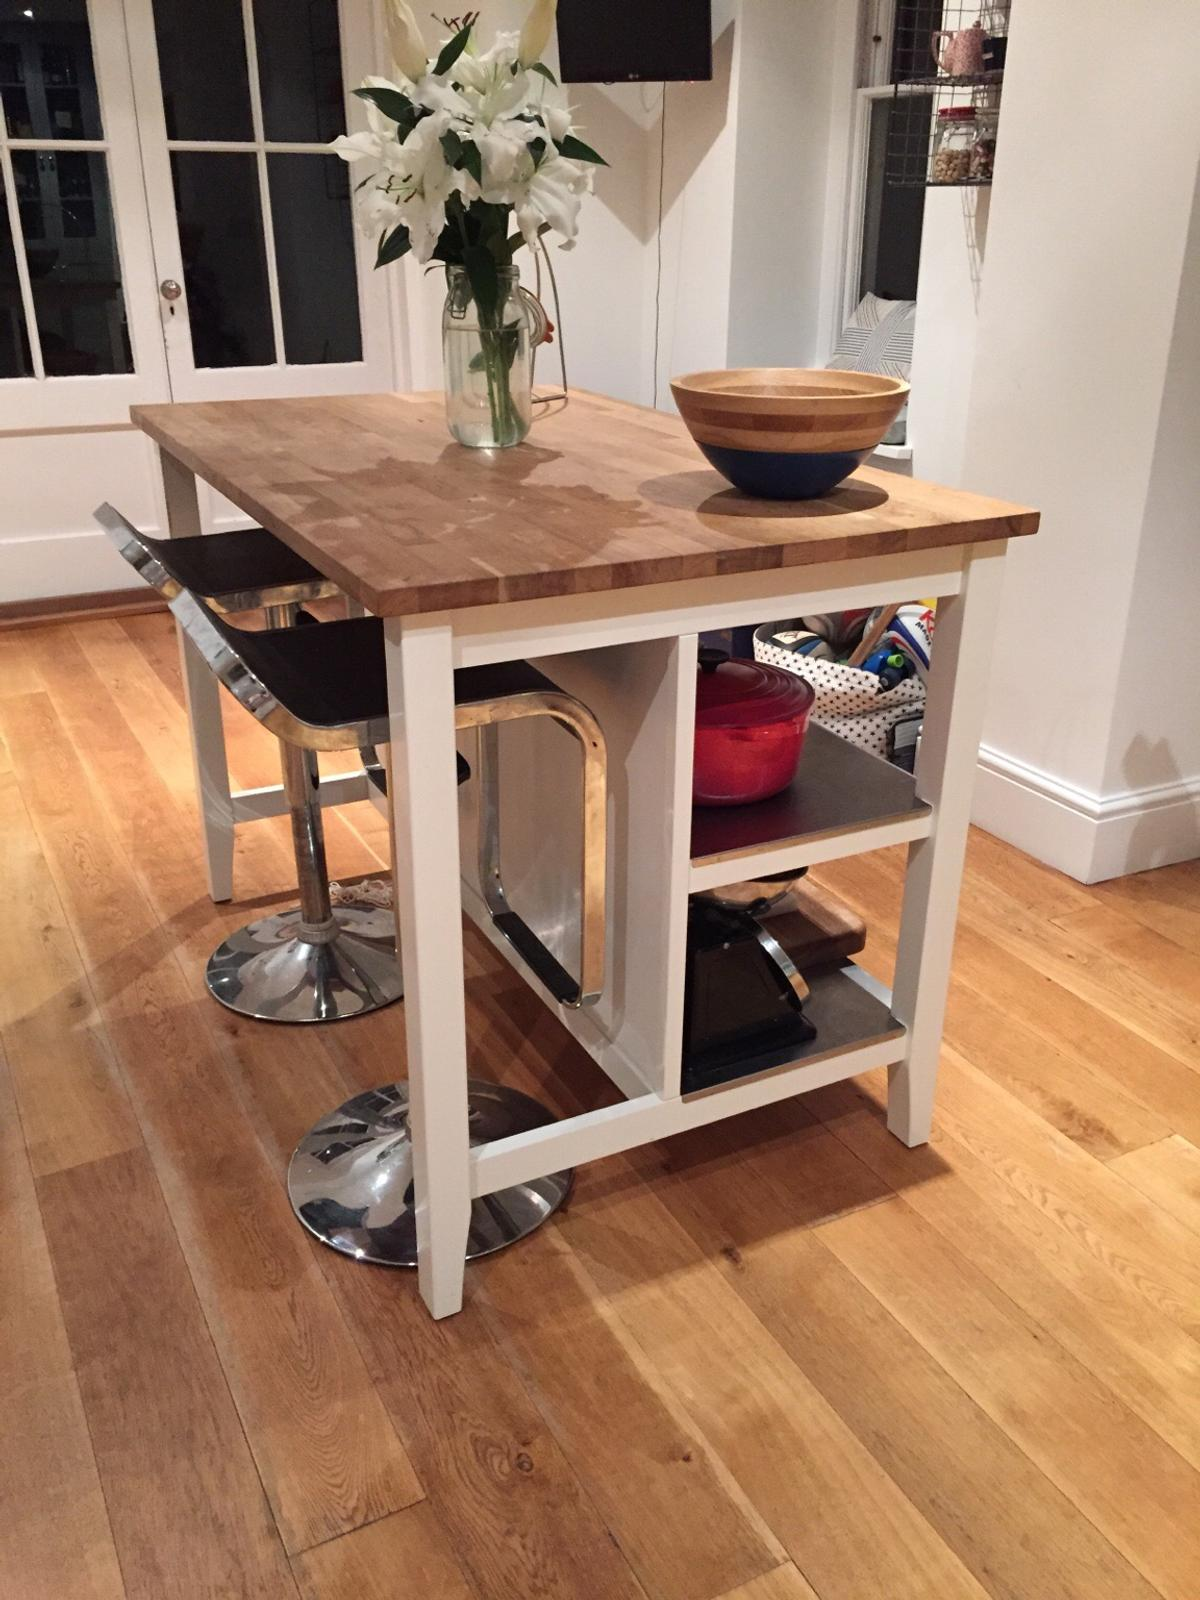 Picture of: Freestanding Ikea Kitchen Island In Ba14 Bradford On Avon For 50 00 For Sale Shpock